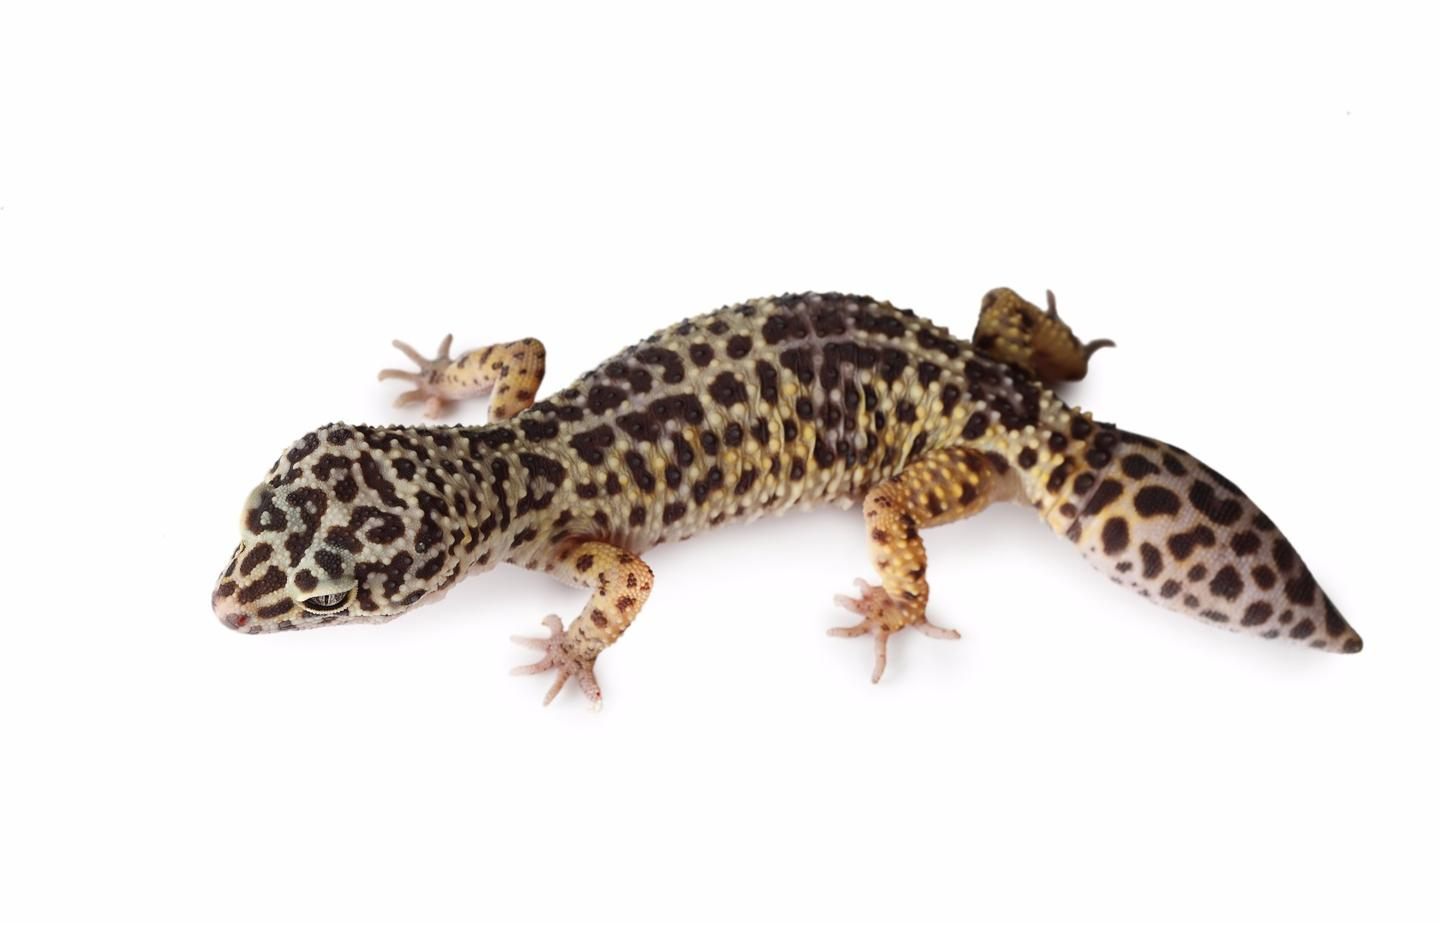 Geckos don't just regrow their tails, but also the spinal cord within